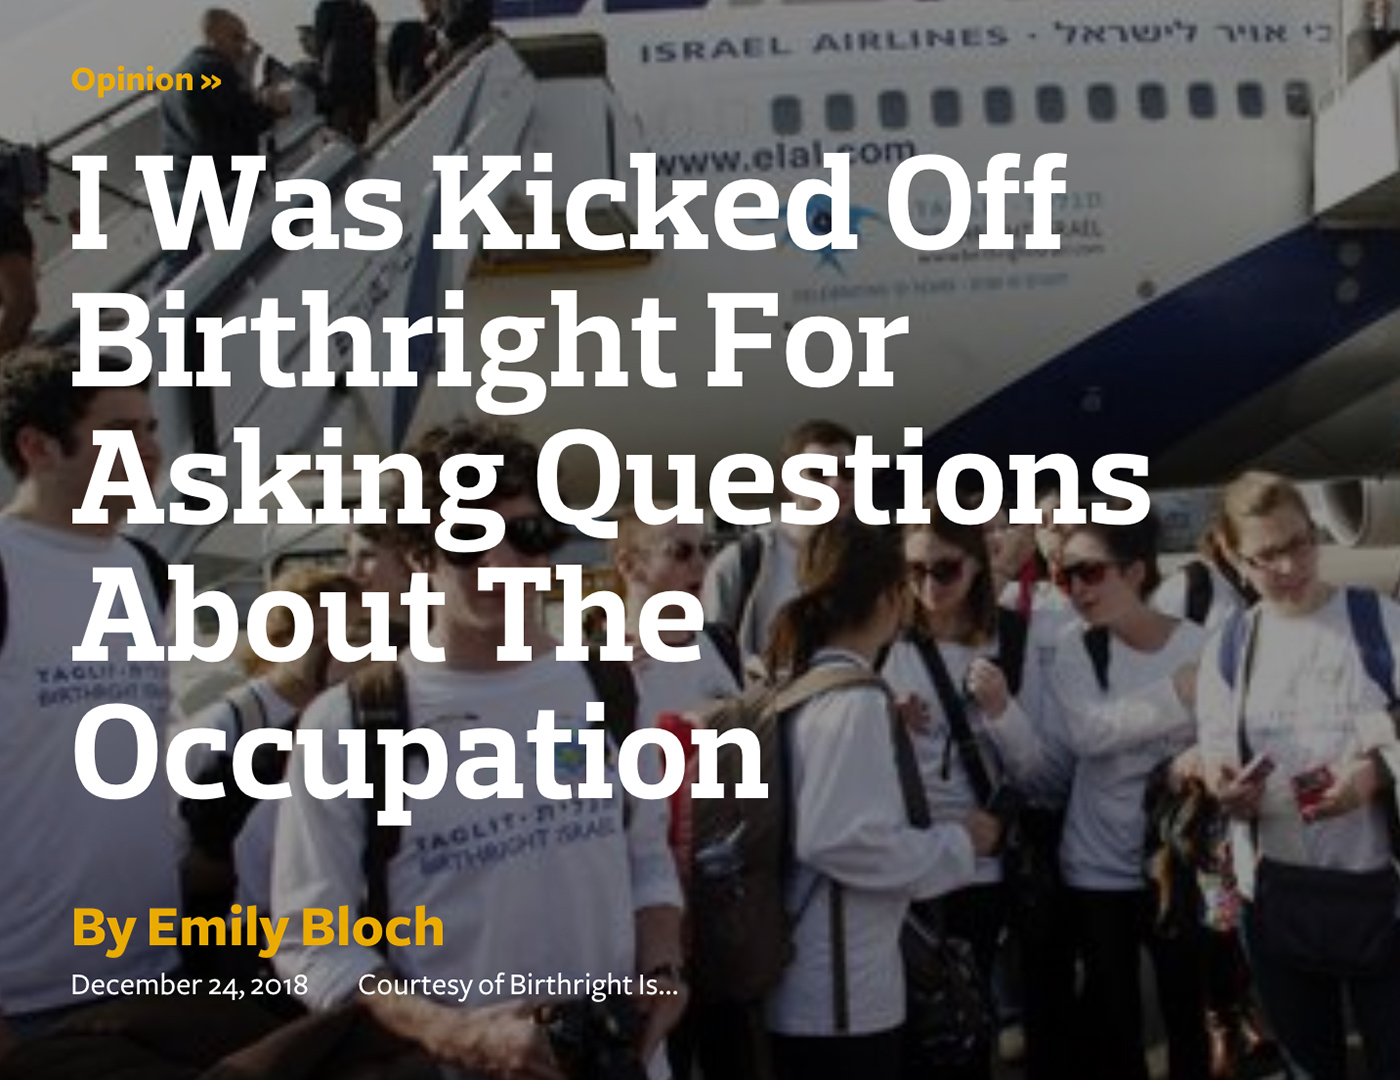 This is the cost of Birthright on our generation: delivering right-wing talking points as facts, making us unwitting supporters of unjust policies — and actively keeping from speaking out against the very same types policies we oppose loudly in the United States.  Image: forward.com/opinion/416545/i-was-kicked-off-birthright-for-asking-questions-about-the-occupation/